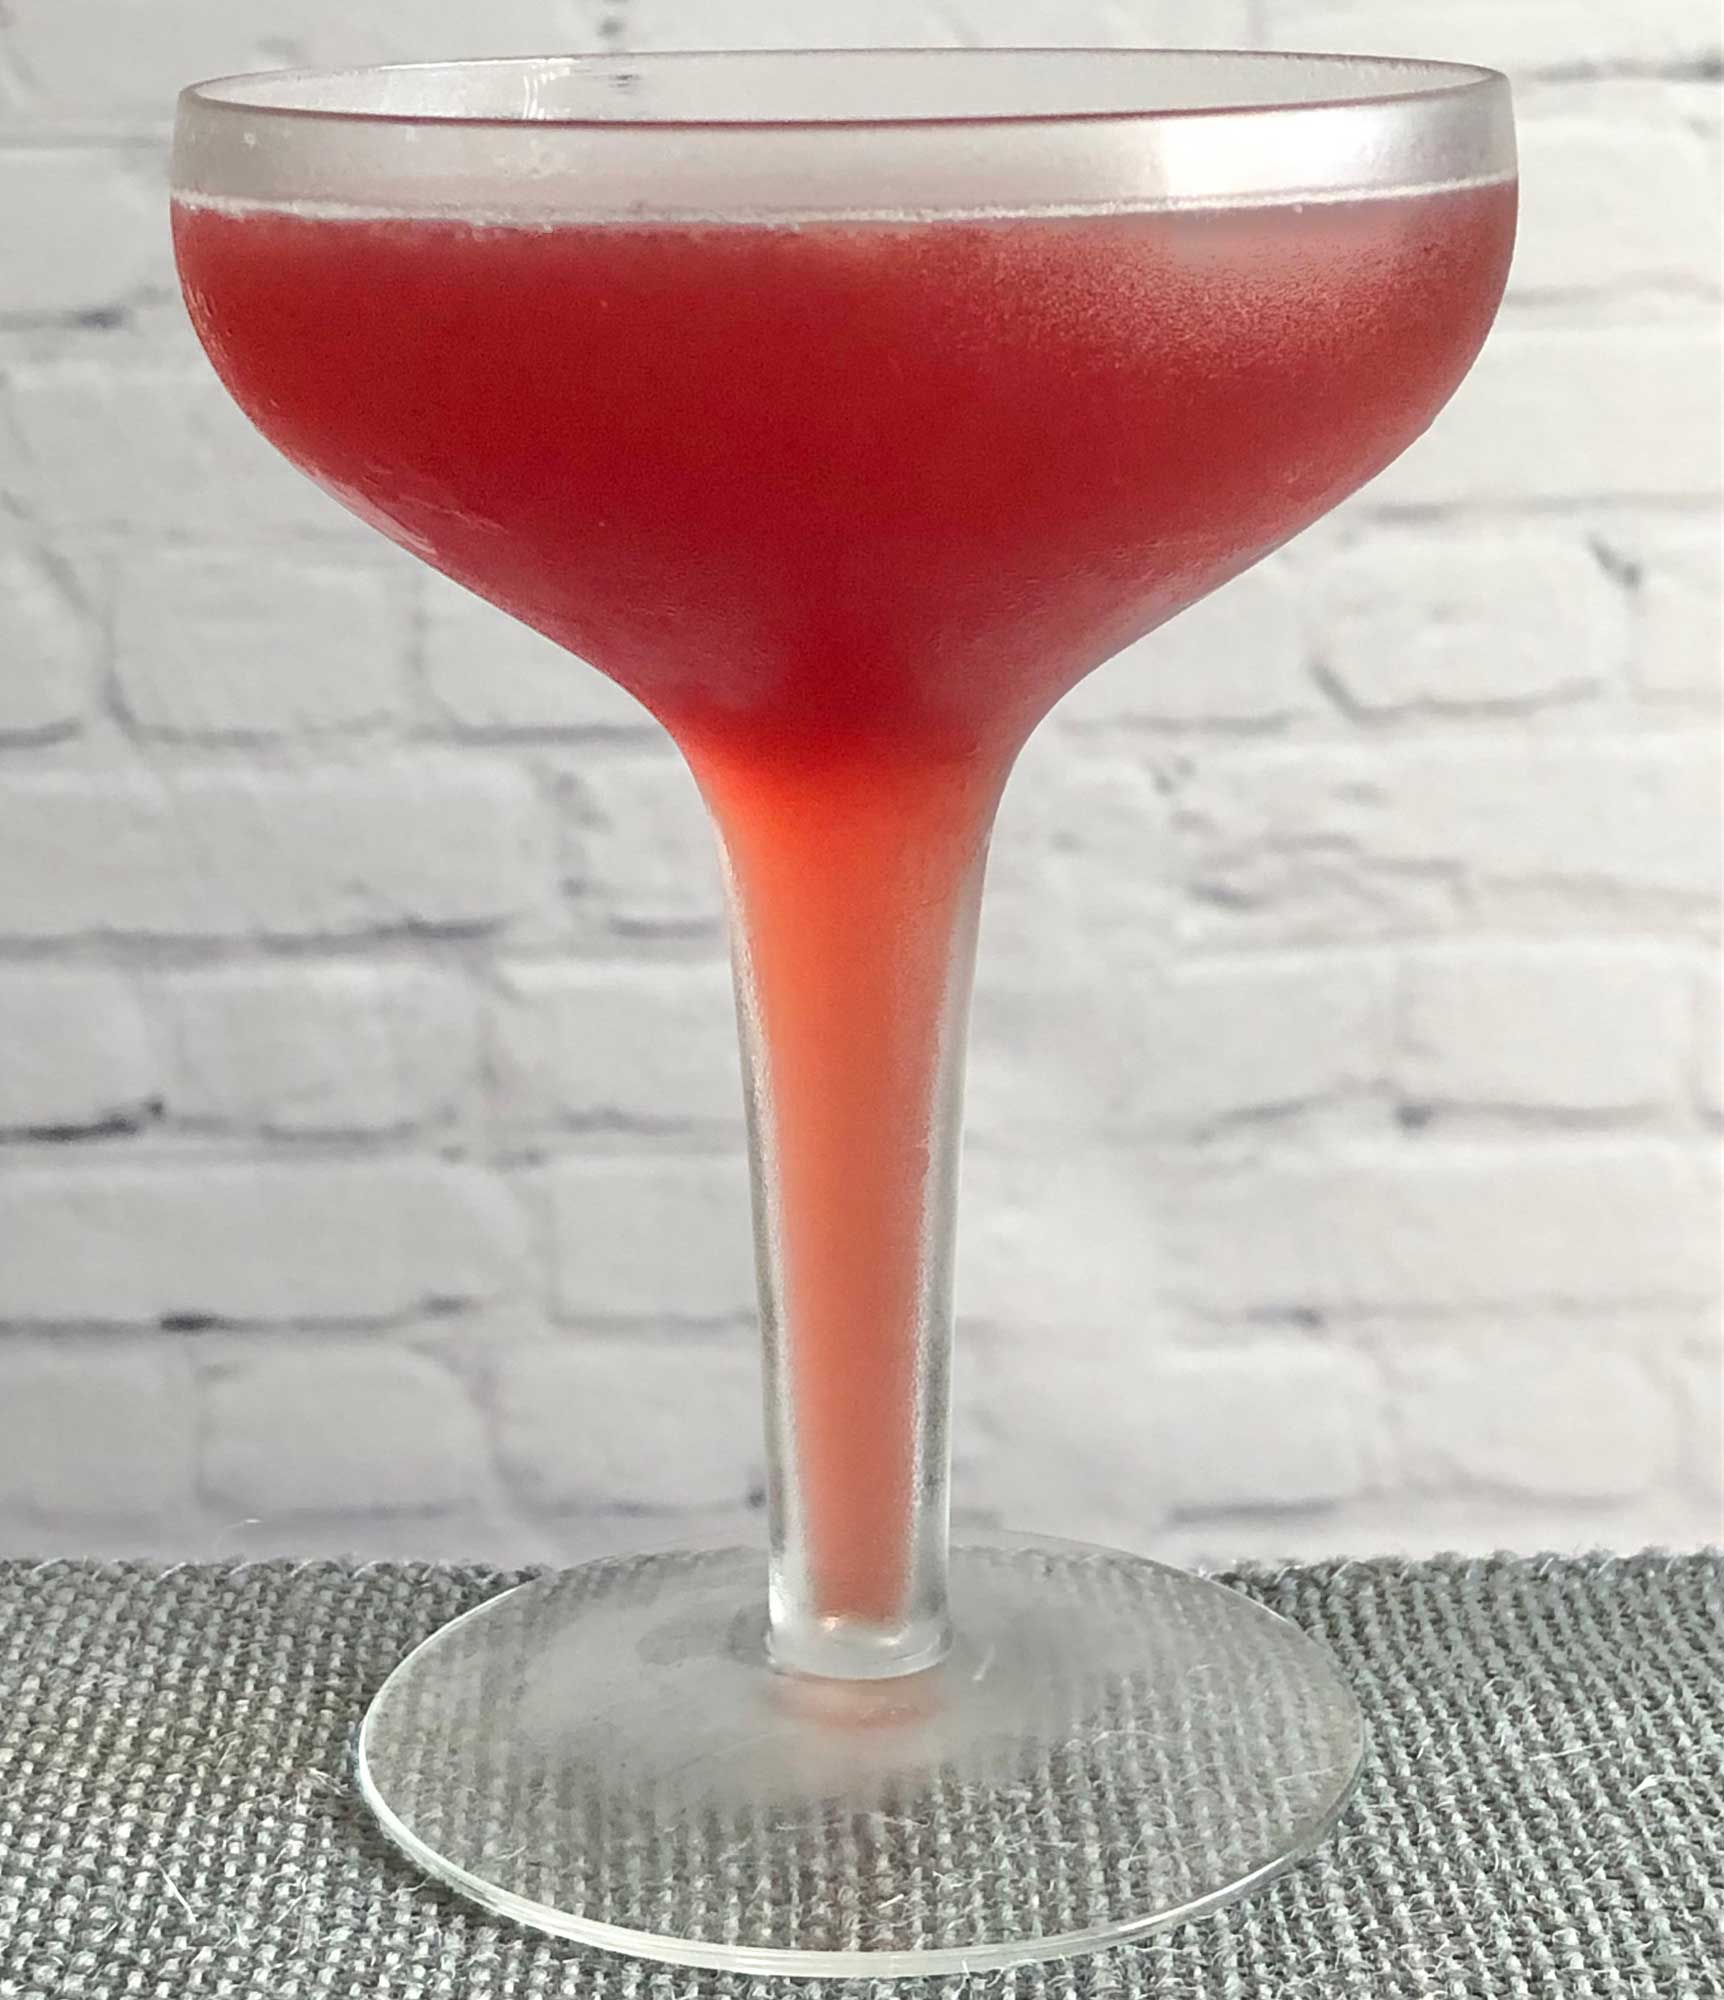 An example of the Robson Cocktail, the mixed drink (cocktail), by Savoy Cocktail Book, featuring Smith & Cross Traditional Jamaica Rum, grenadine, orange juice, lemon juice, and Angostura bitters; photo by Lee Edwards